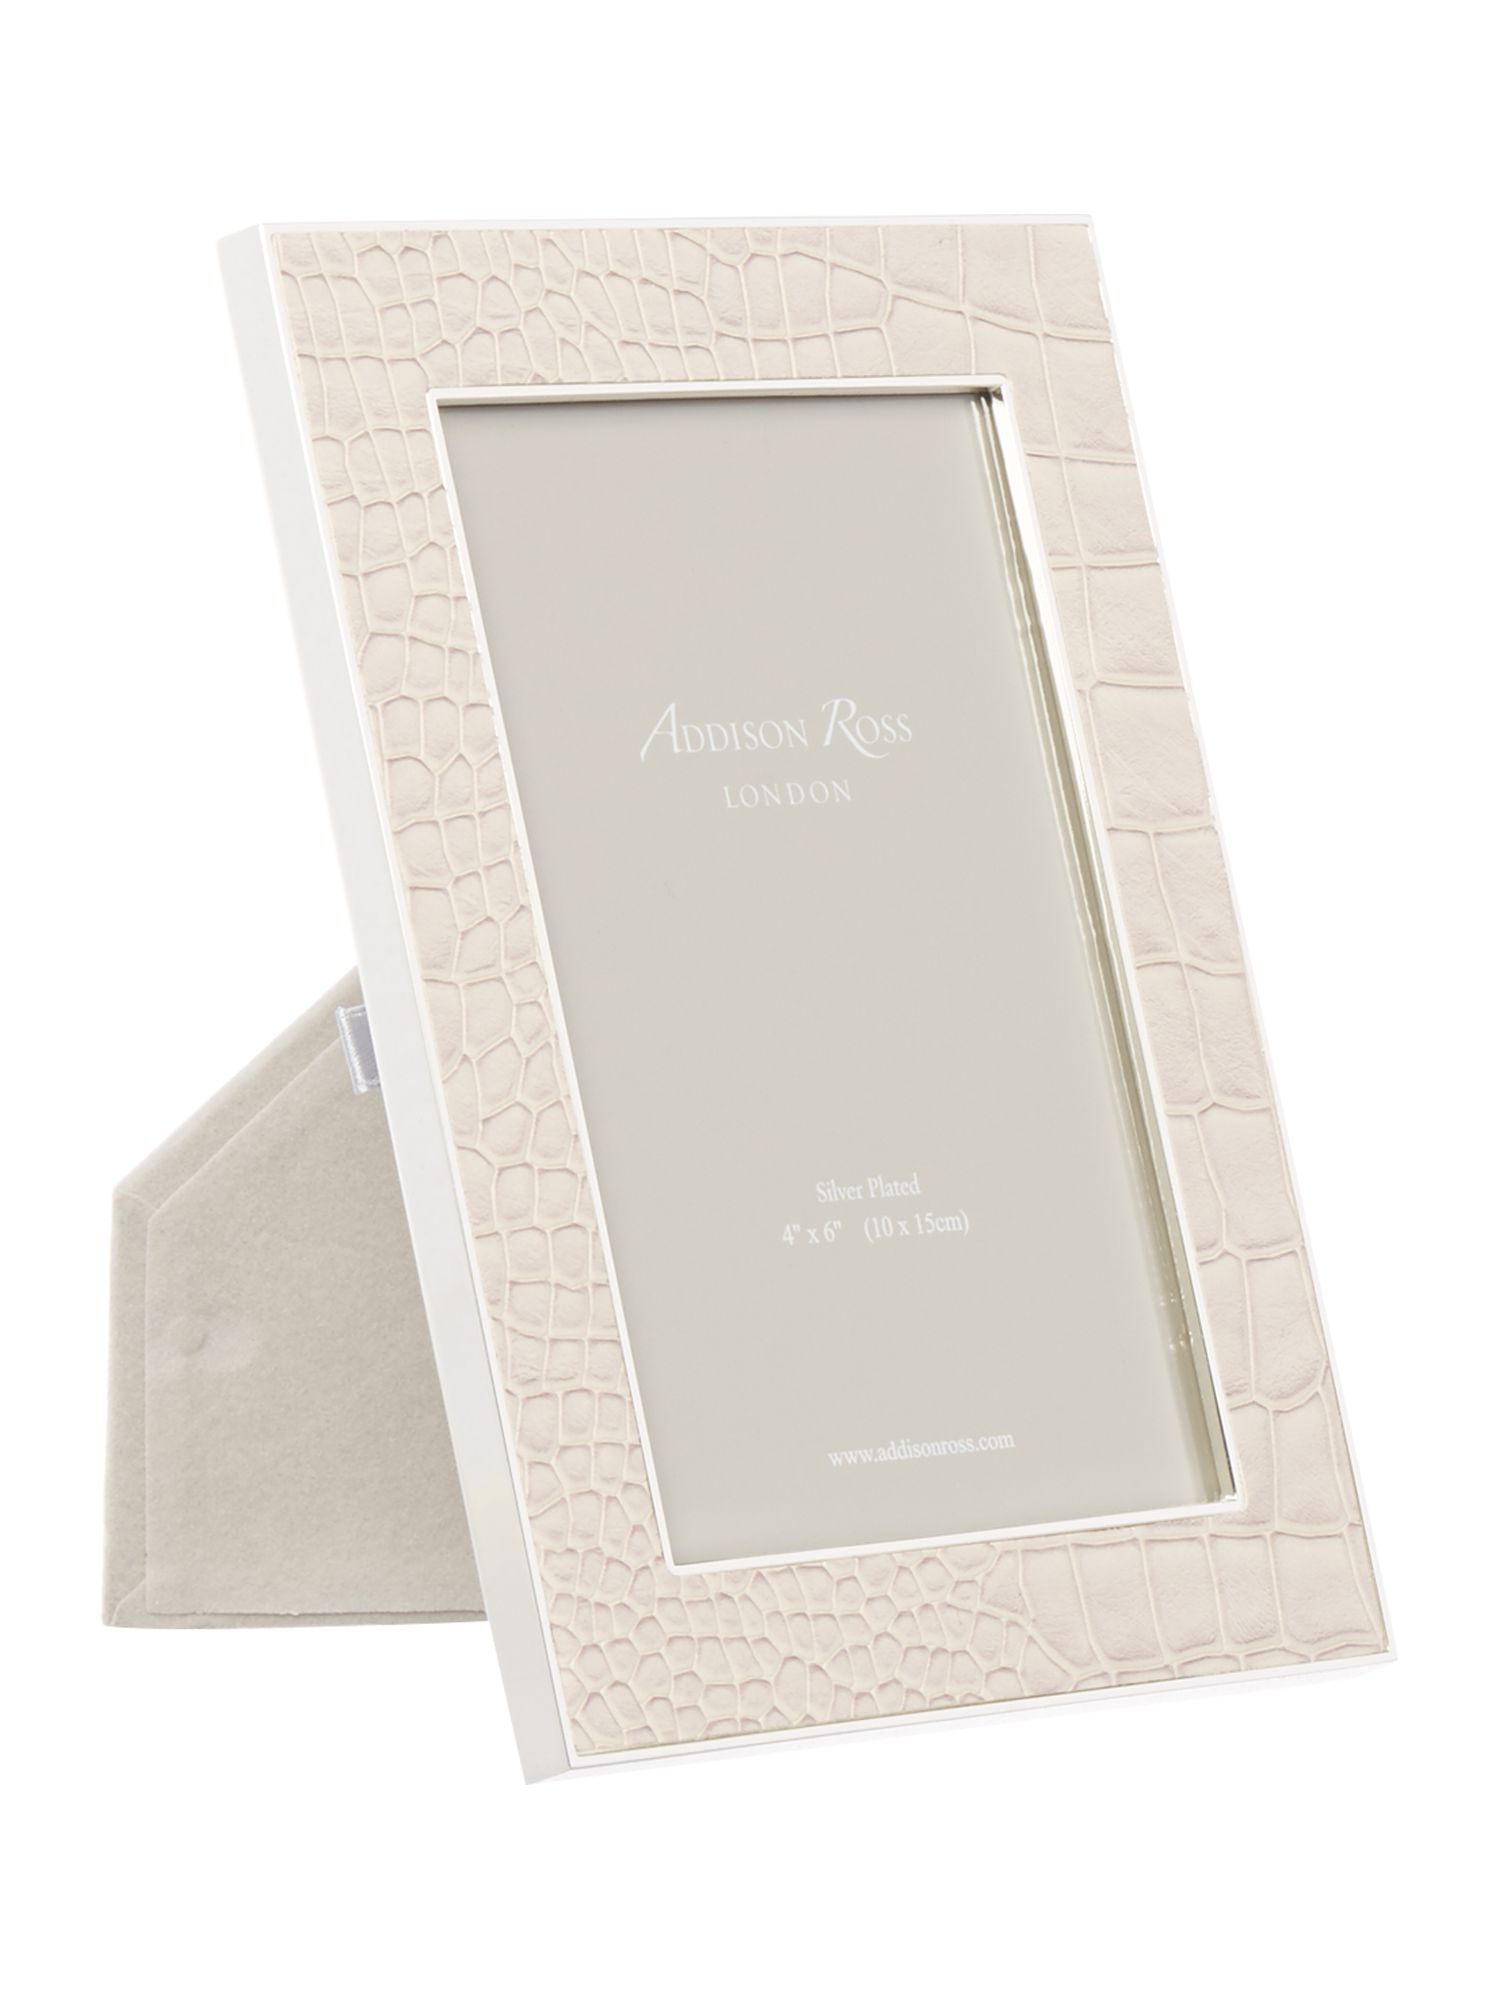 Image of Addison Ross 4x6 faux croc cream frame